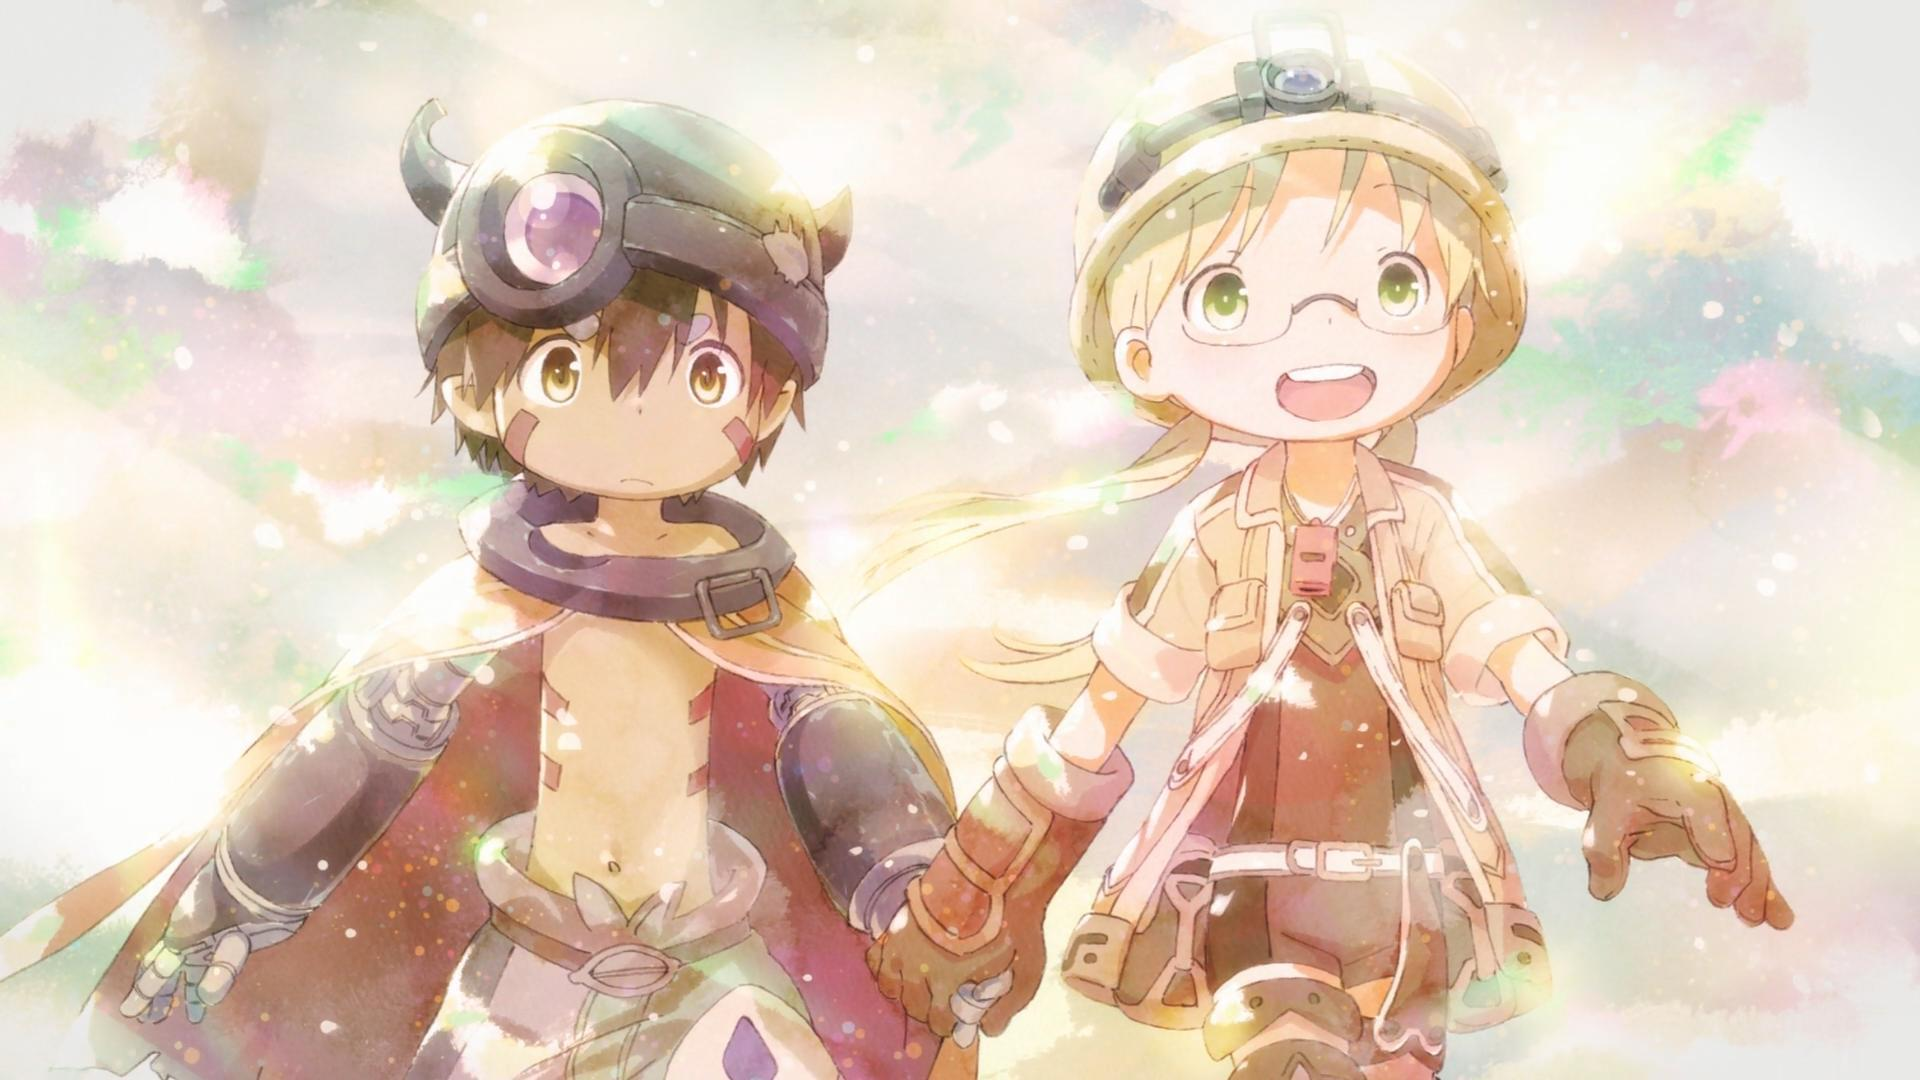 Wallpapers : Made in Abyss, Regu Made in Abyss, Riko Made in Abyss